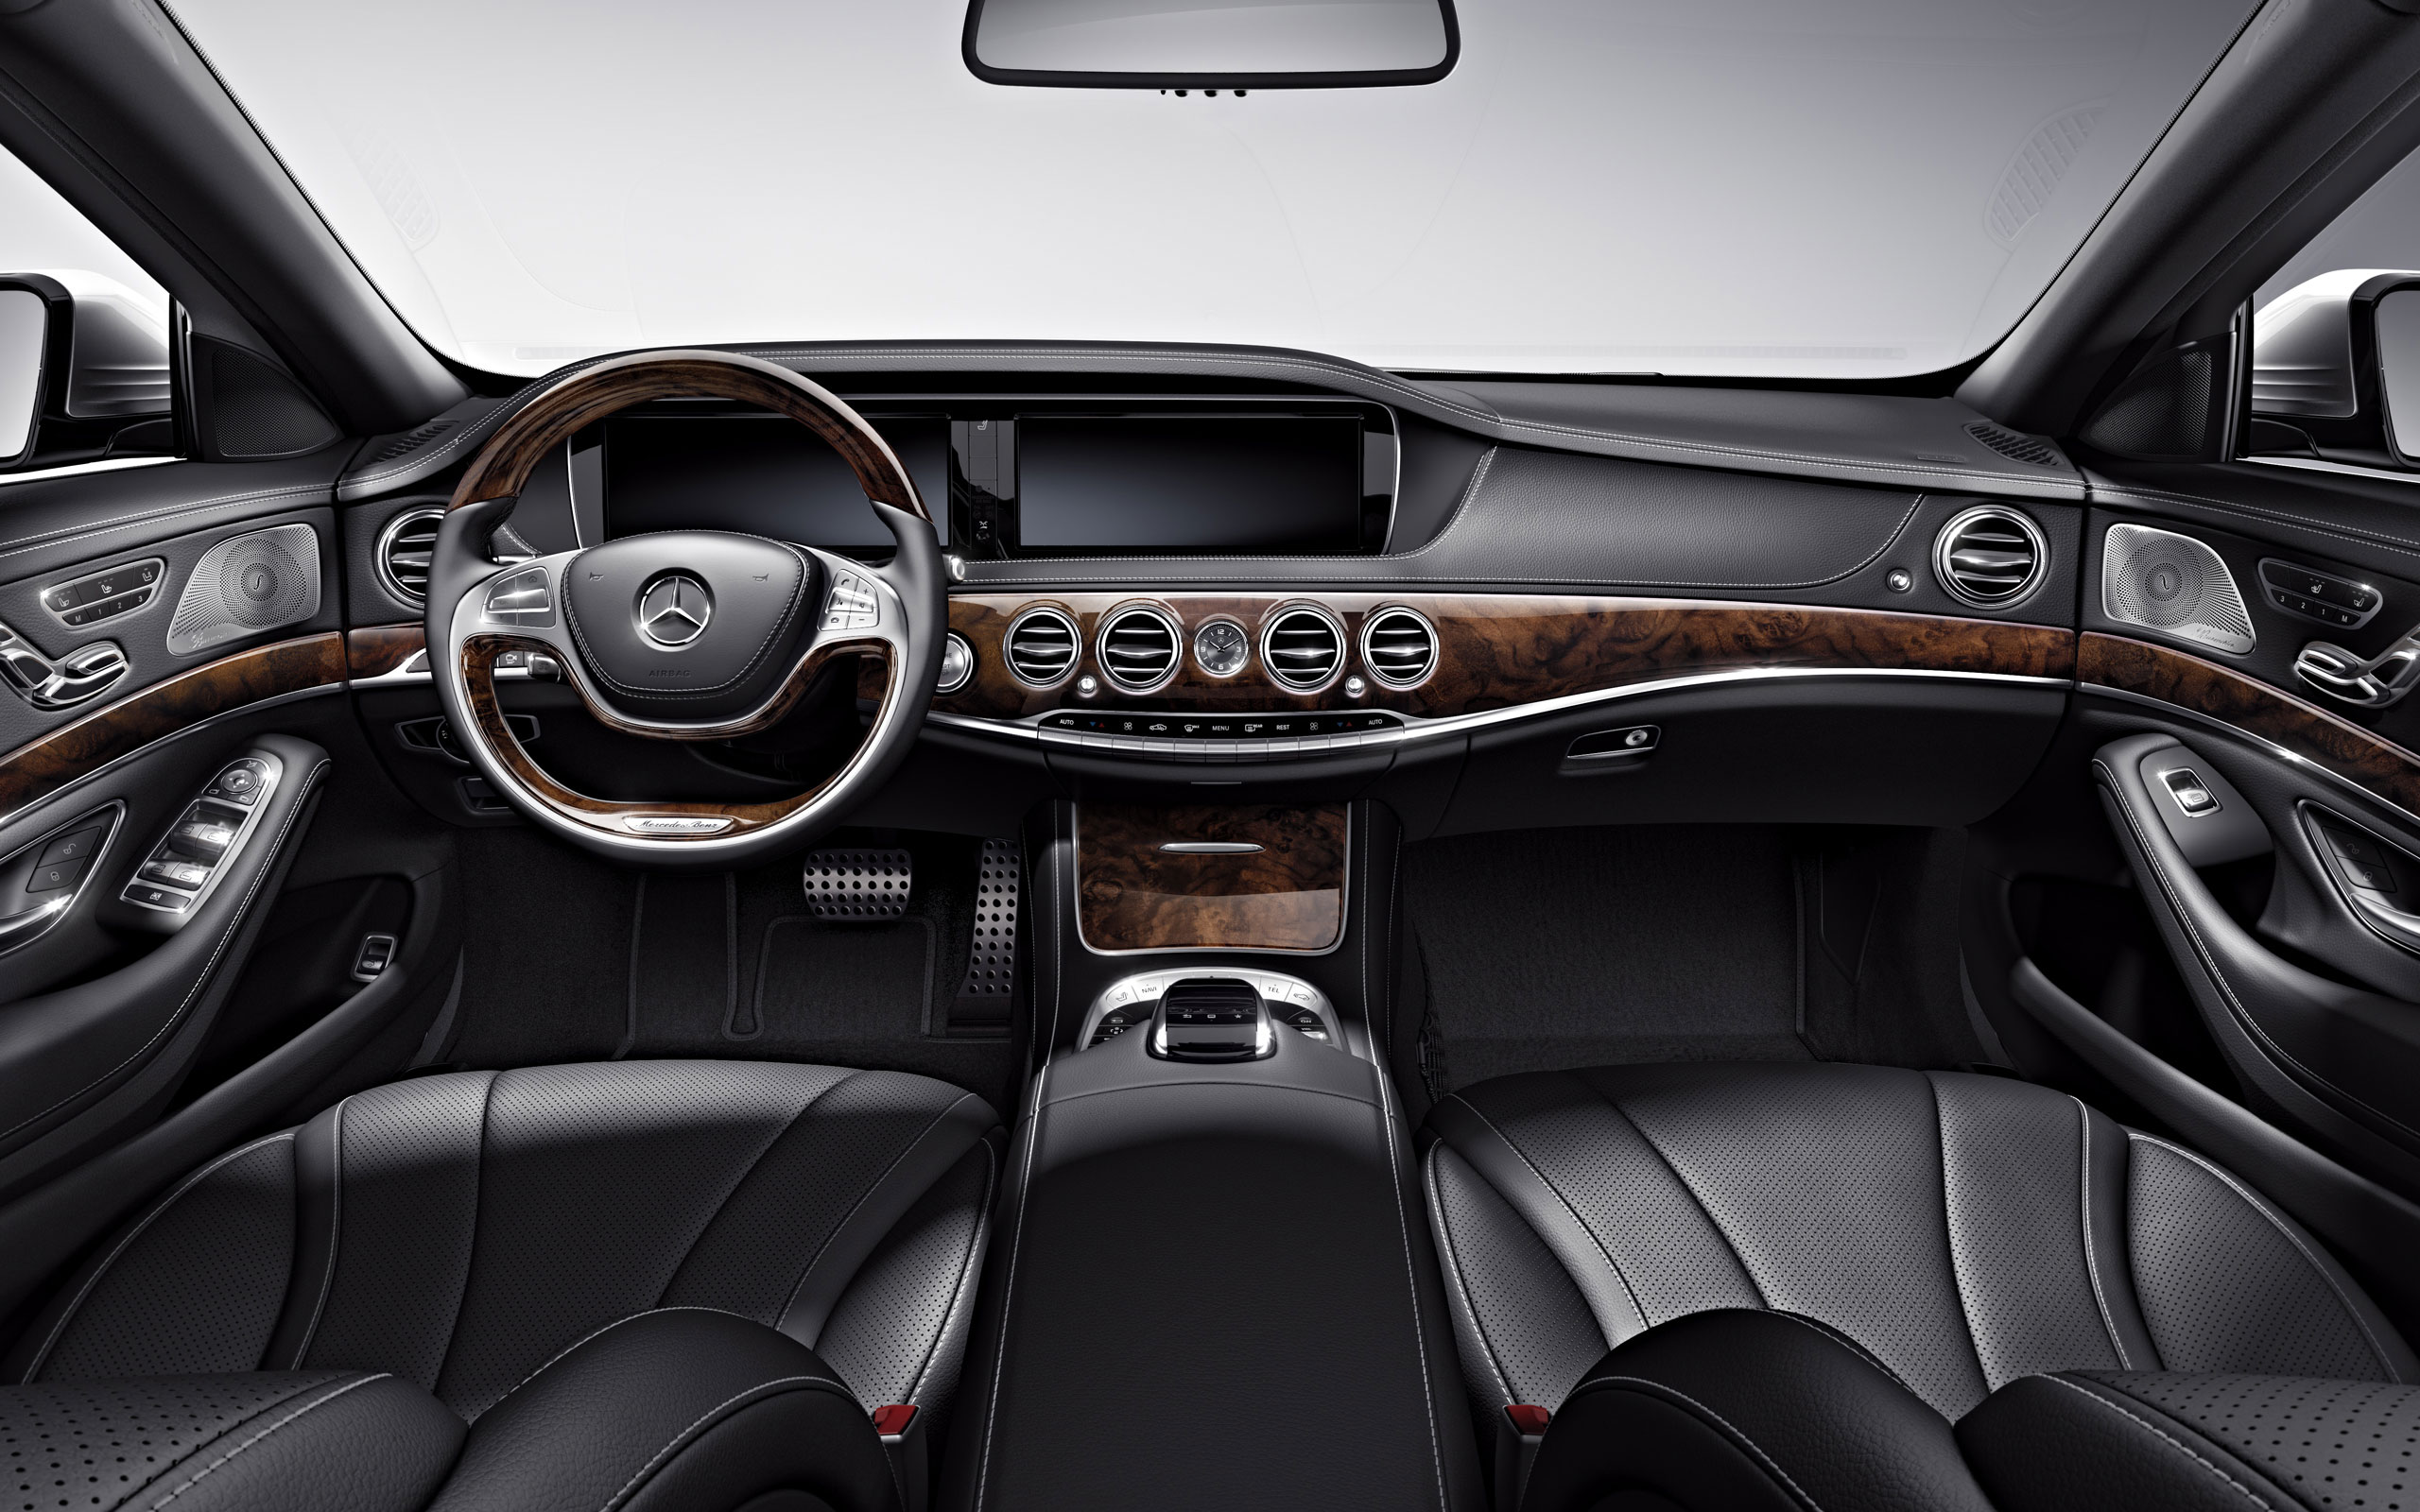 s550 with black leather and burl walnut wood trim - Mercedes Benz 2014 S Class Black